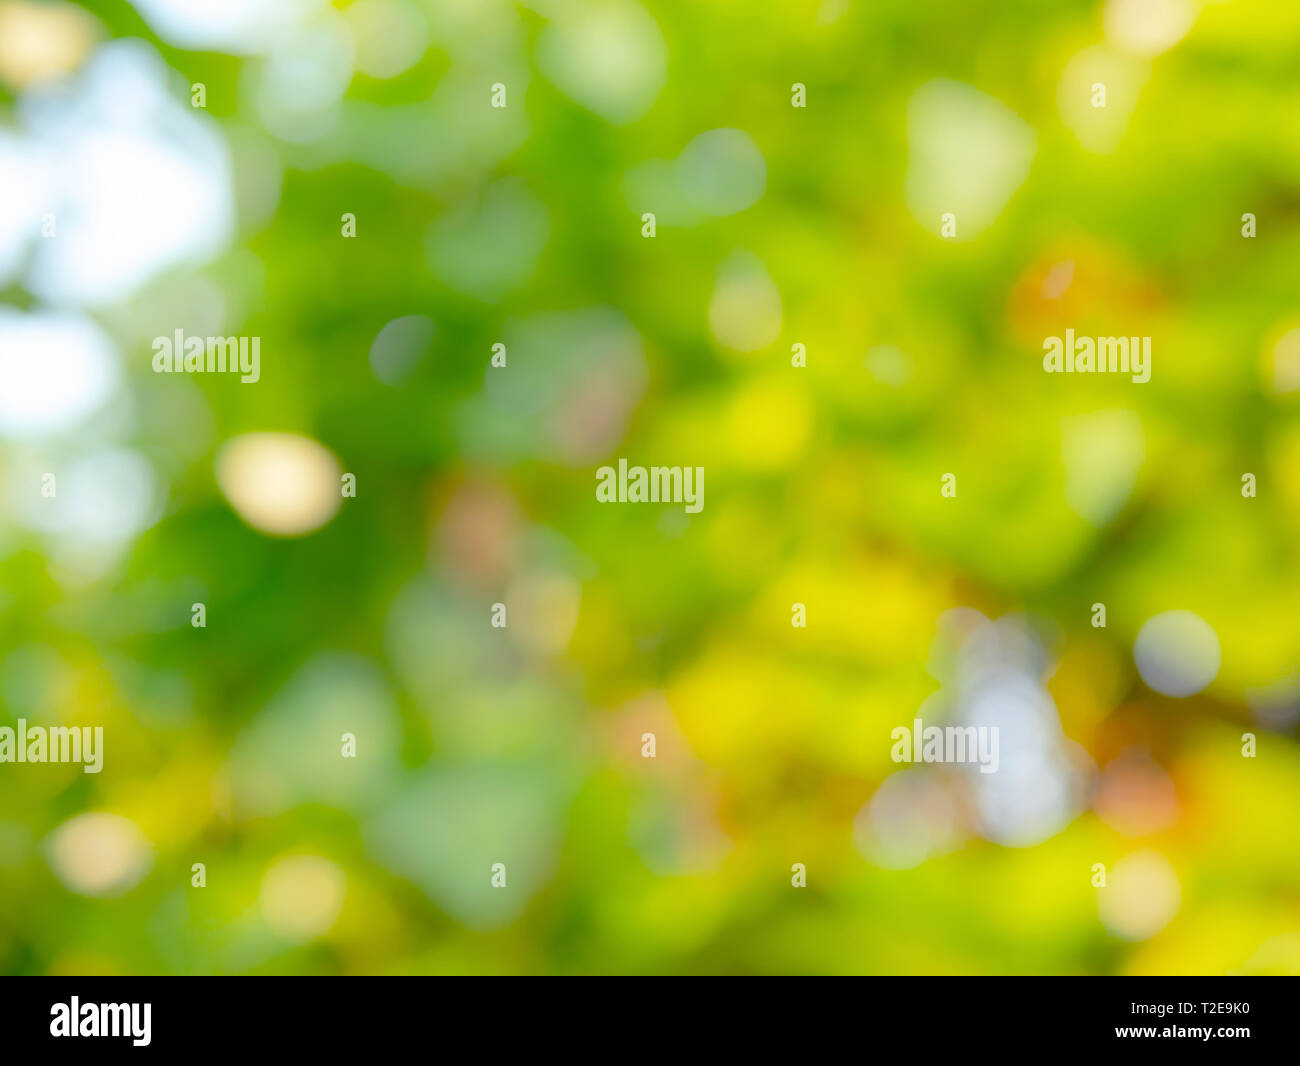 abstract background and texture